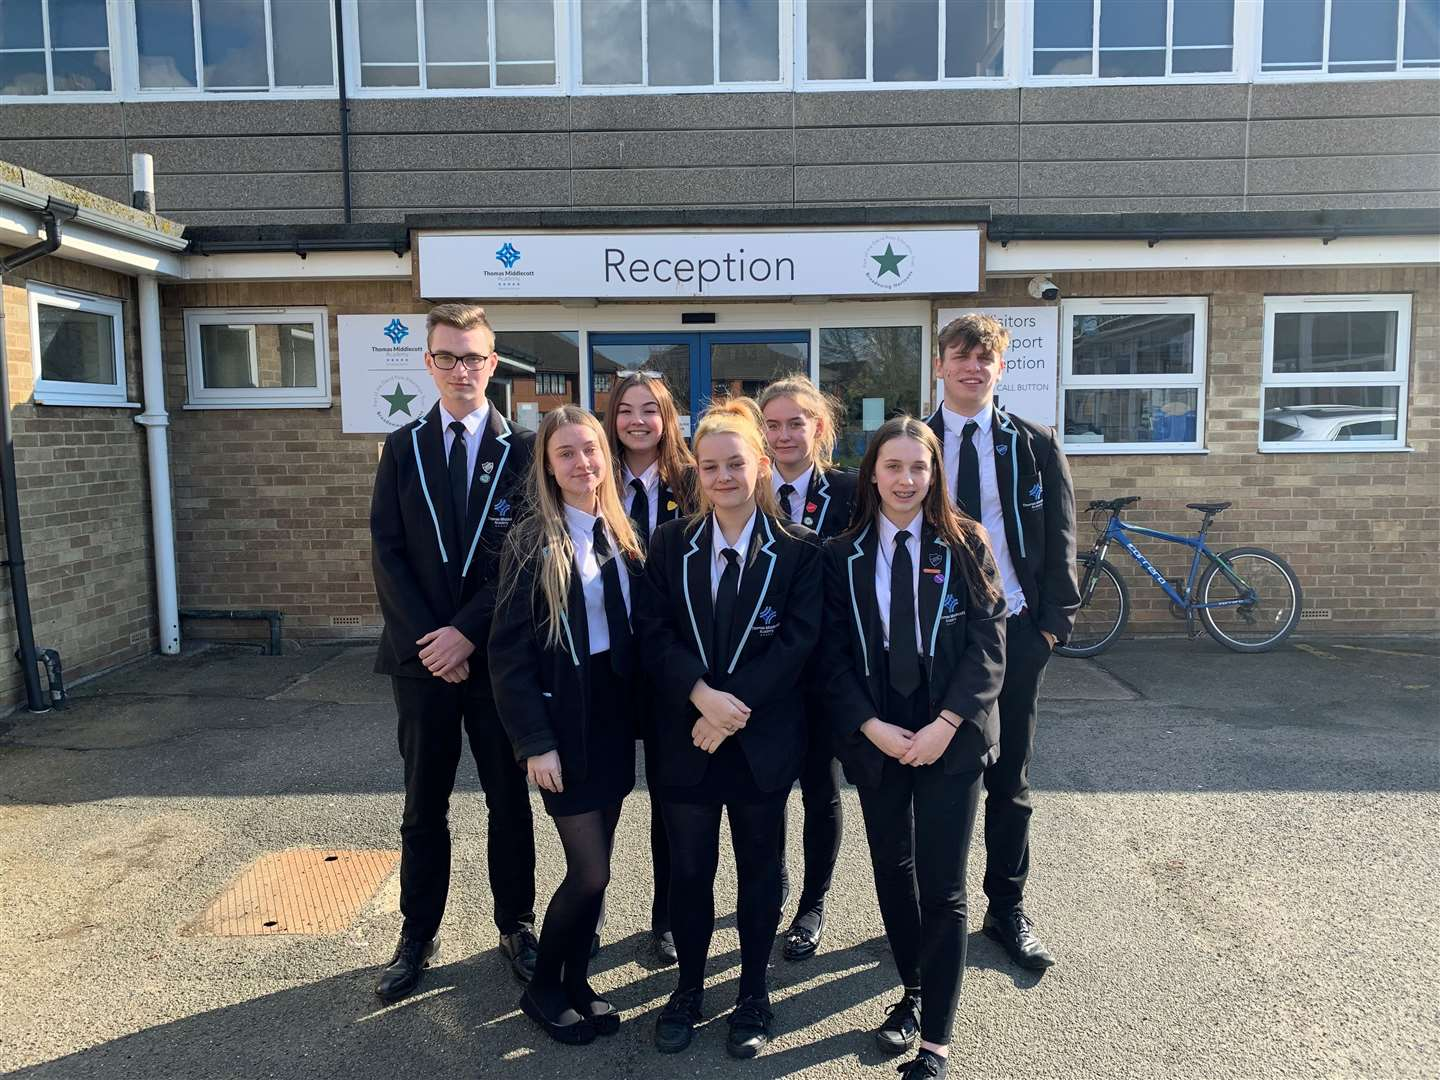 Prefects at Thomas Midlecott Academy in Kirton. (31255220)